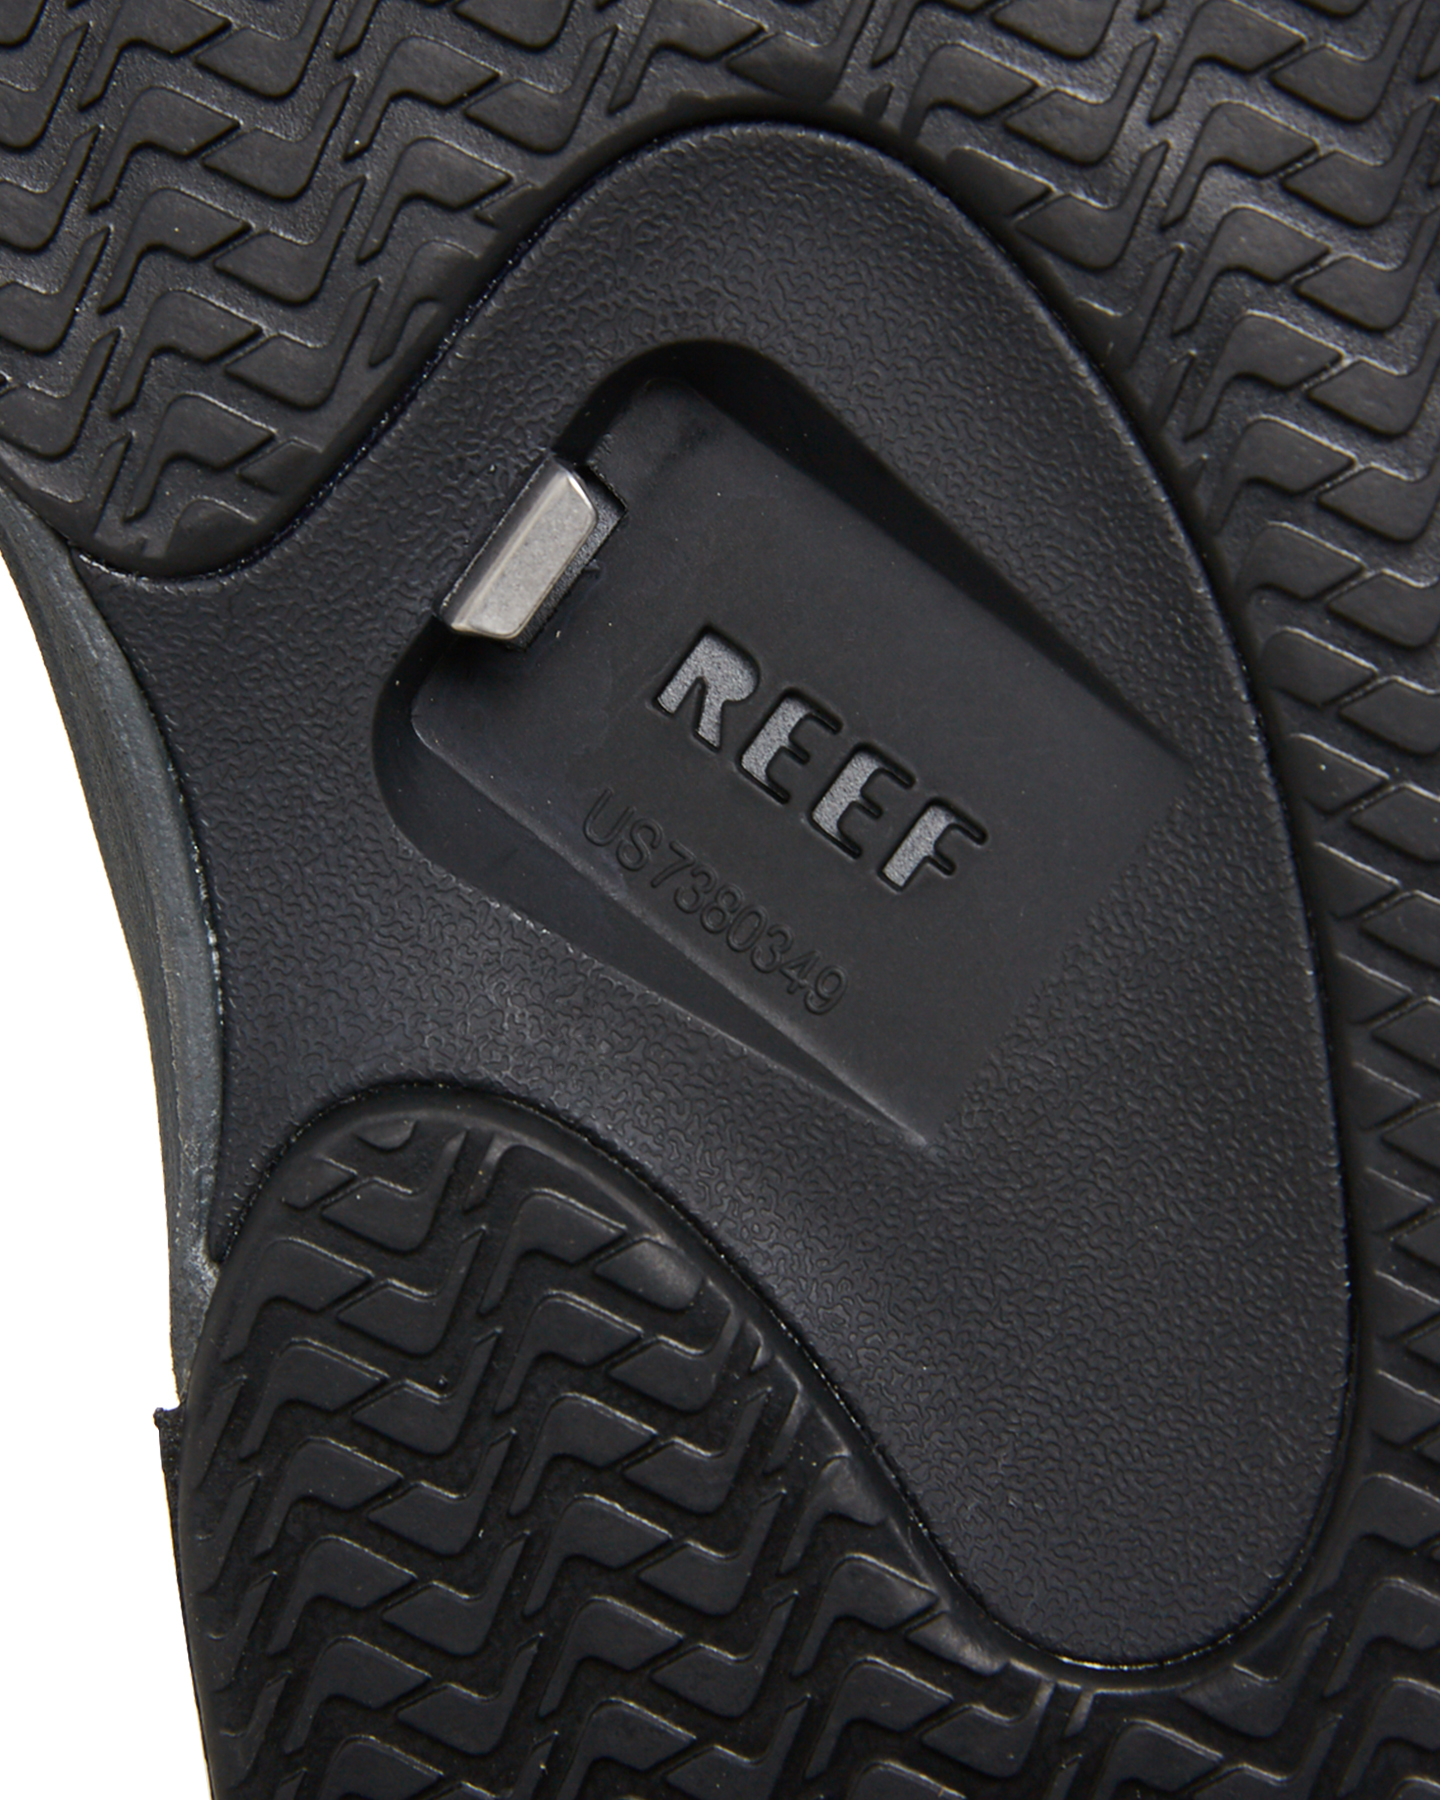 New-Reef-Men-039-s-Fanning-Thong-Synthetic-Black thumbnail 21